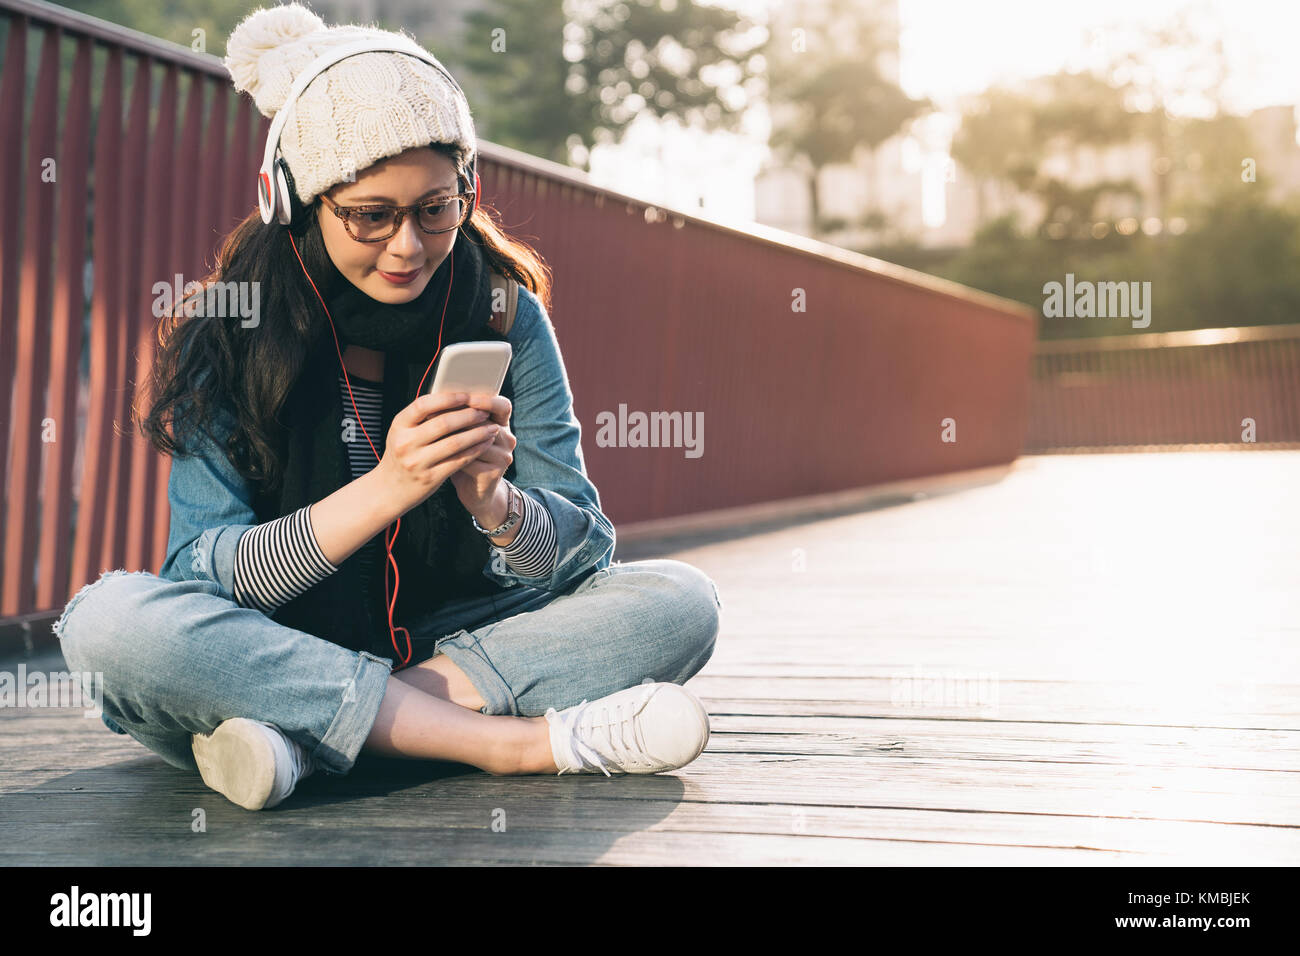 Girl stylish app how to use